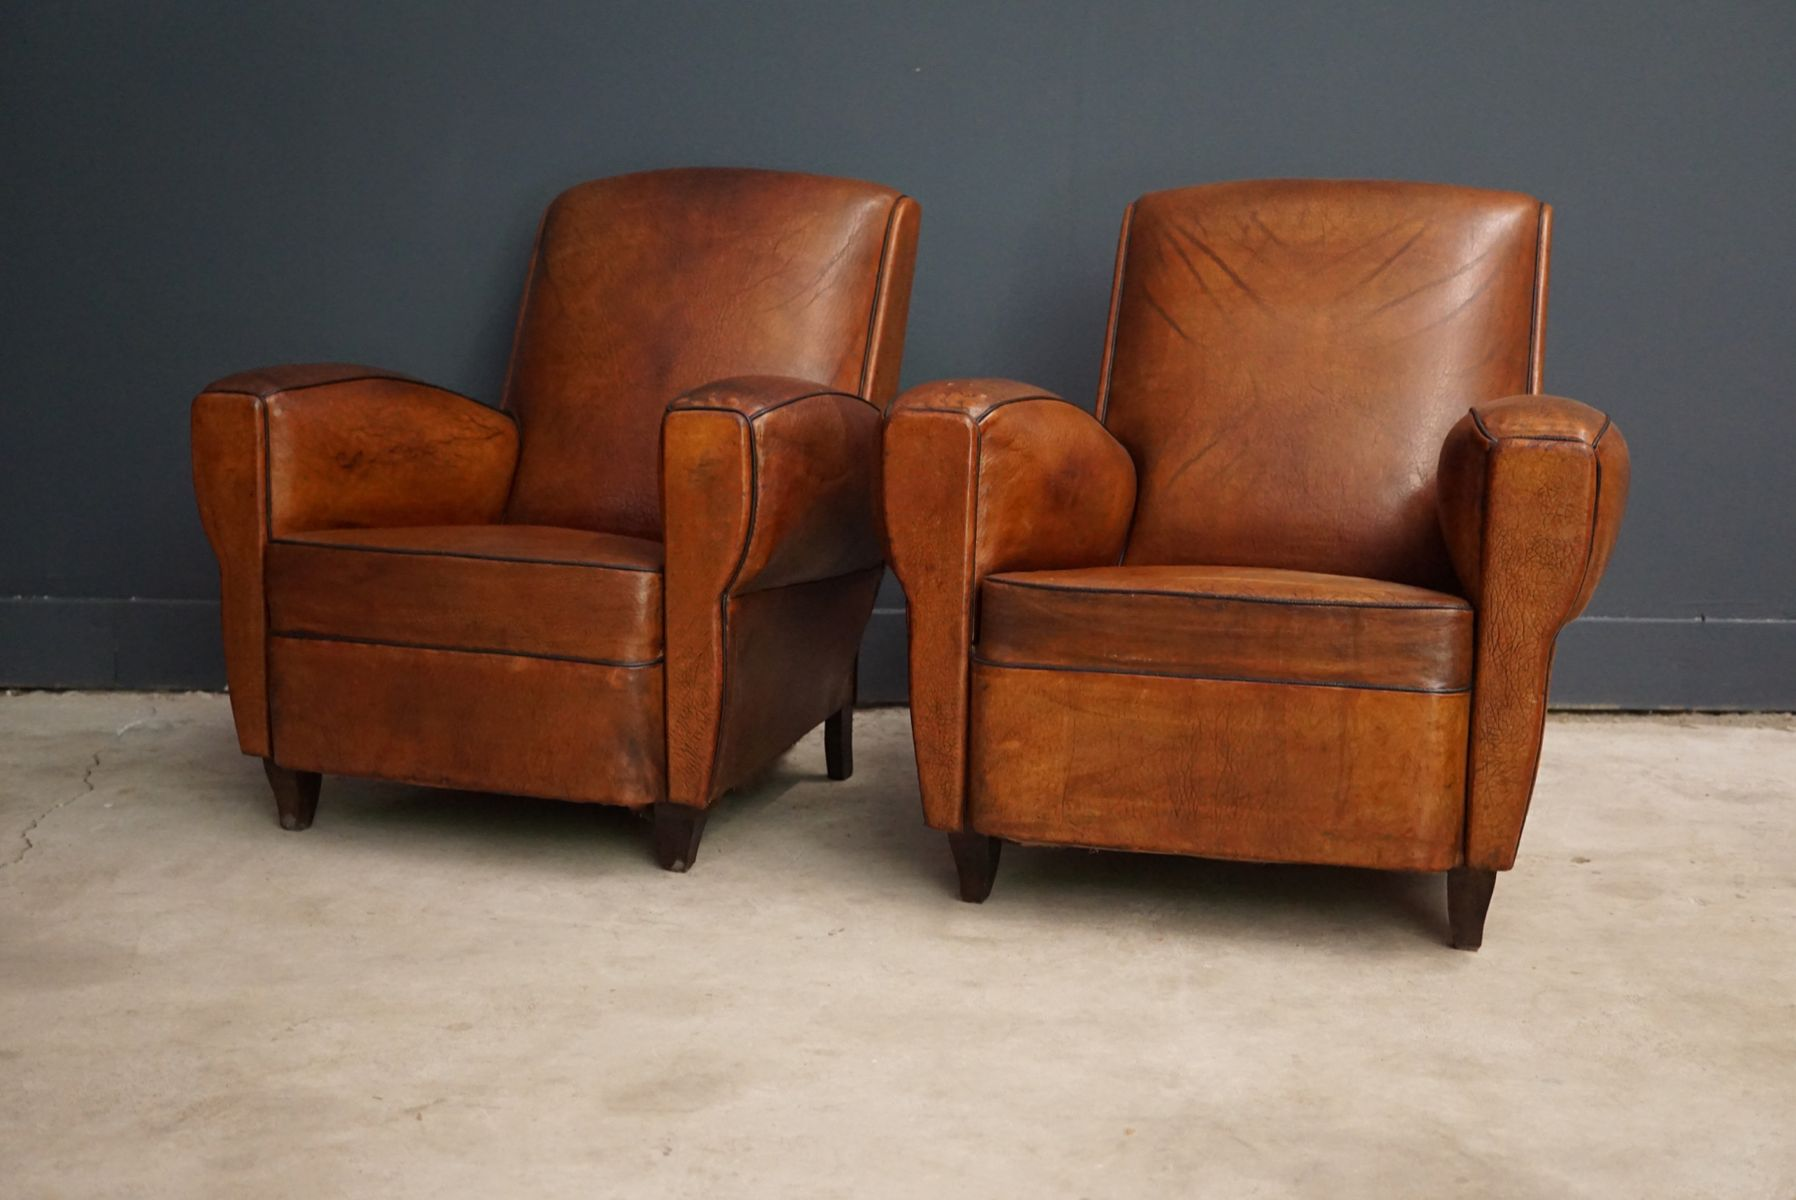 French Leather Club Chairs 1940s Set of 2 for sale at Pamono